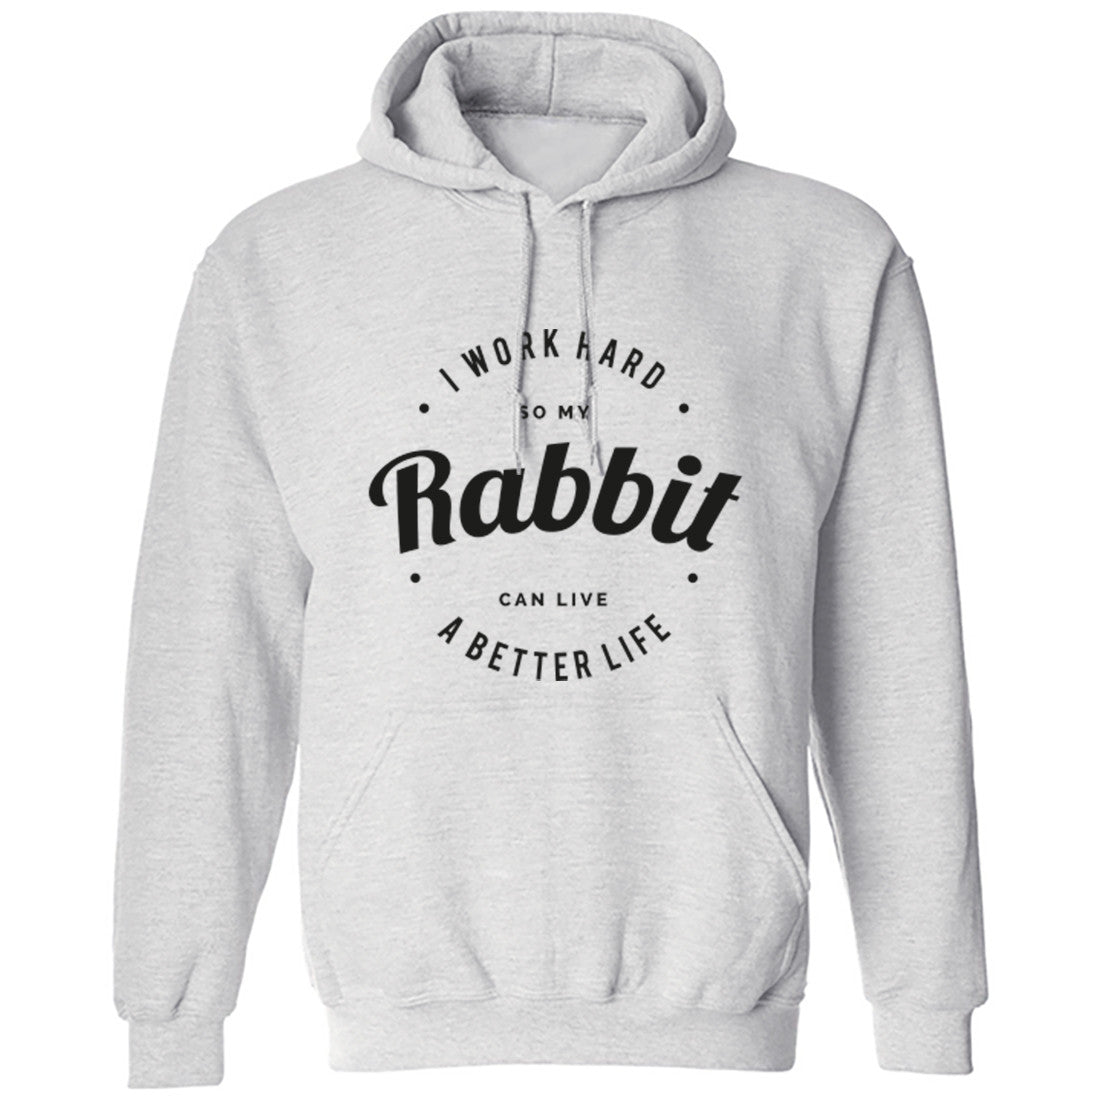 I Work Hard So My Rabbit Can Live A Better Life Unisex Hoodie K0433 - Illustrated Identity Ltd.